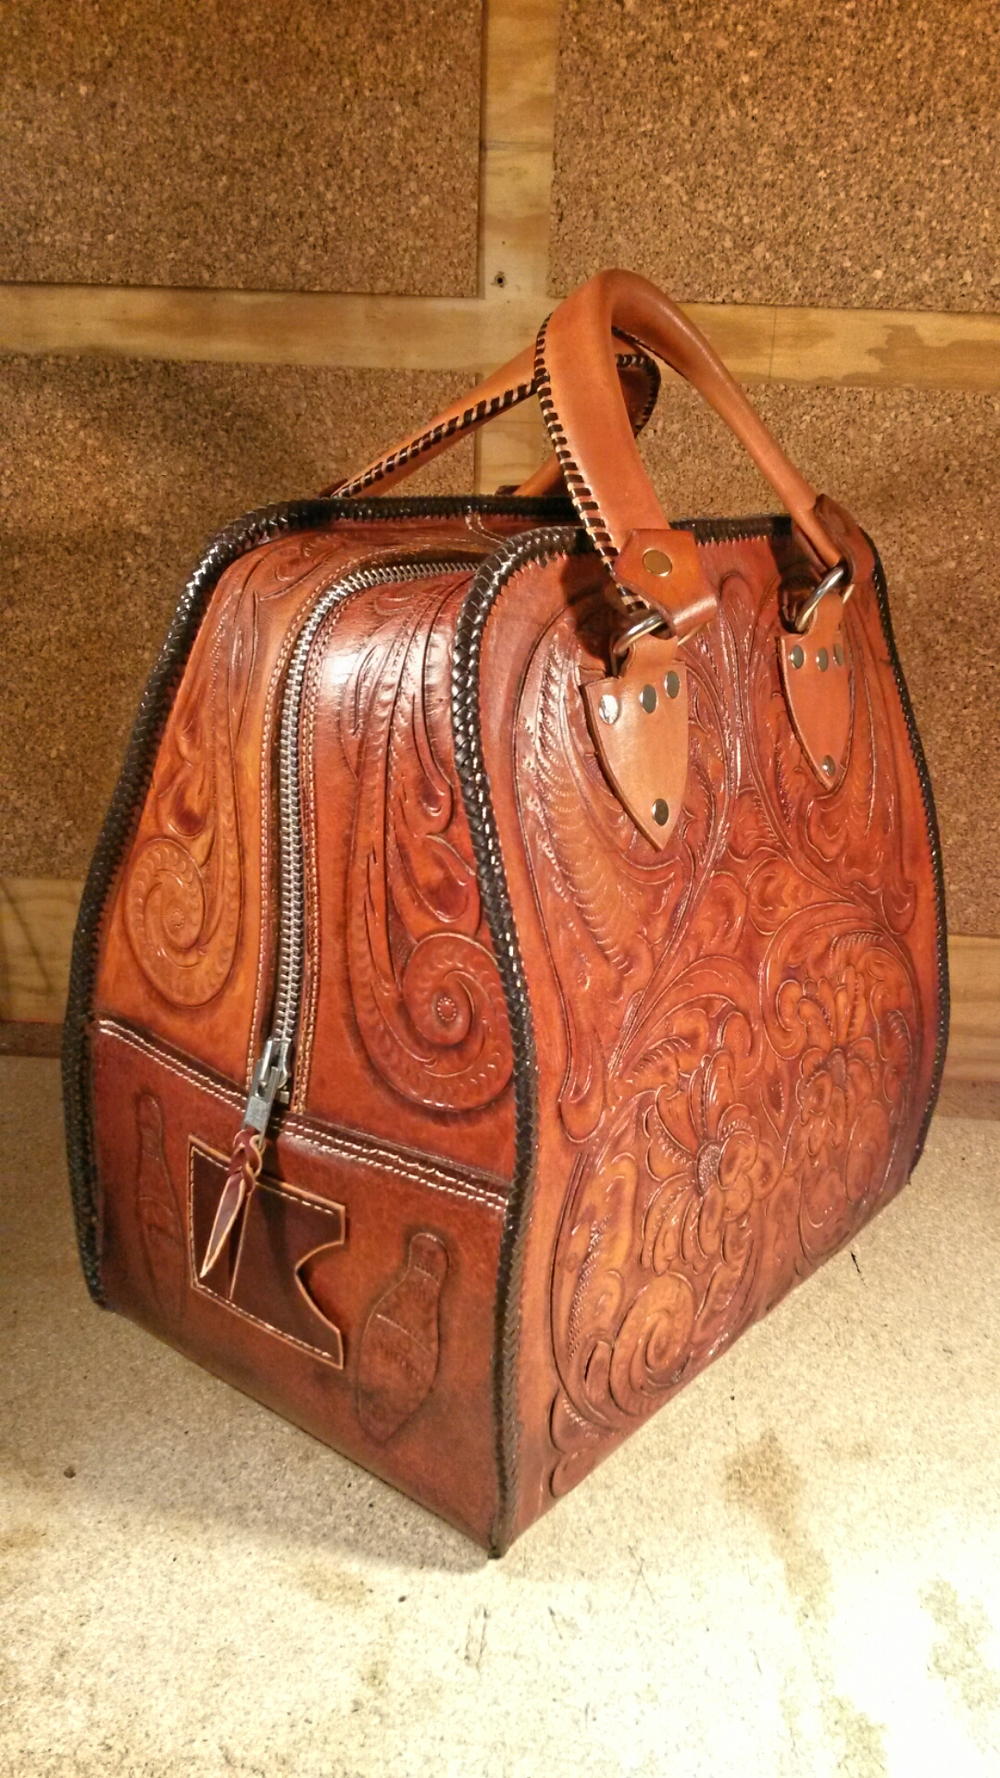 """I don't know where to start. I was brought to tears when I was presented with the bowling bag. I'm seriously blown away! I never expected to see such an amazing restoration! I just wanted a new zipper. I always appreciated the craftsmanship that went into making the bag, but you clearly have another level of appreciation and talent for leather work. This bag is priceless, I will cherish this bag until the day I die. I can't thank you enough!"" David M. - CO"